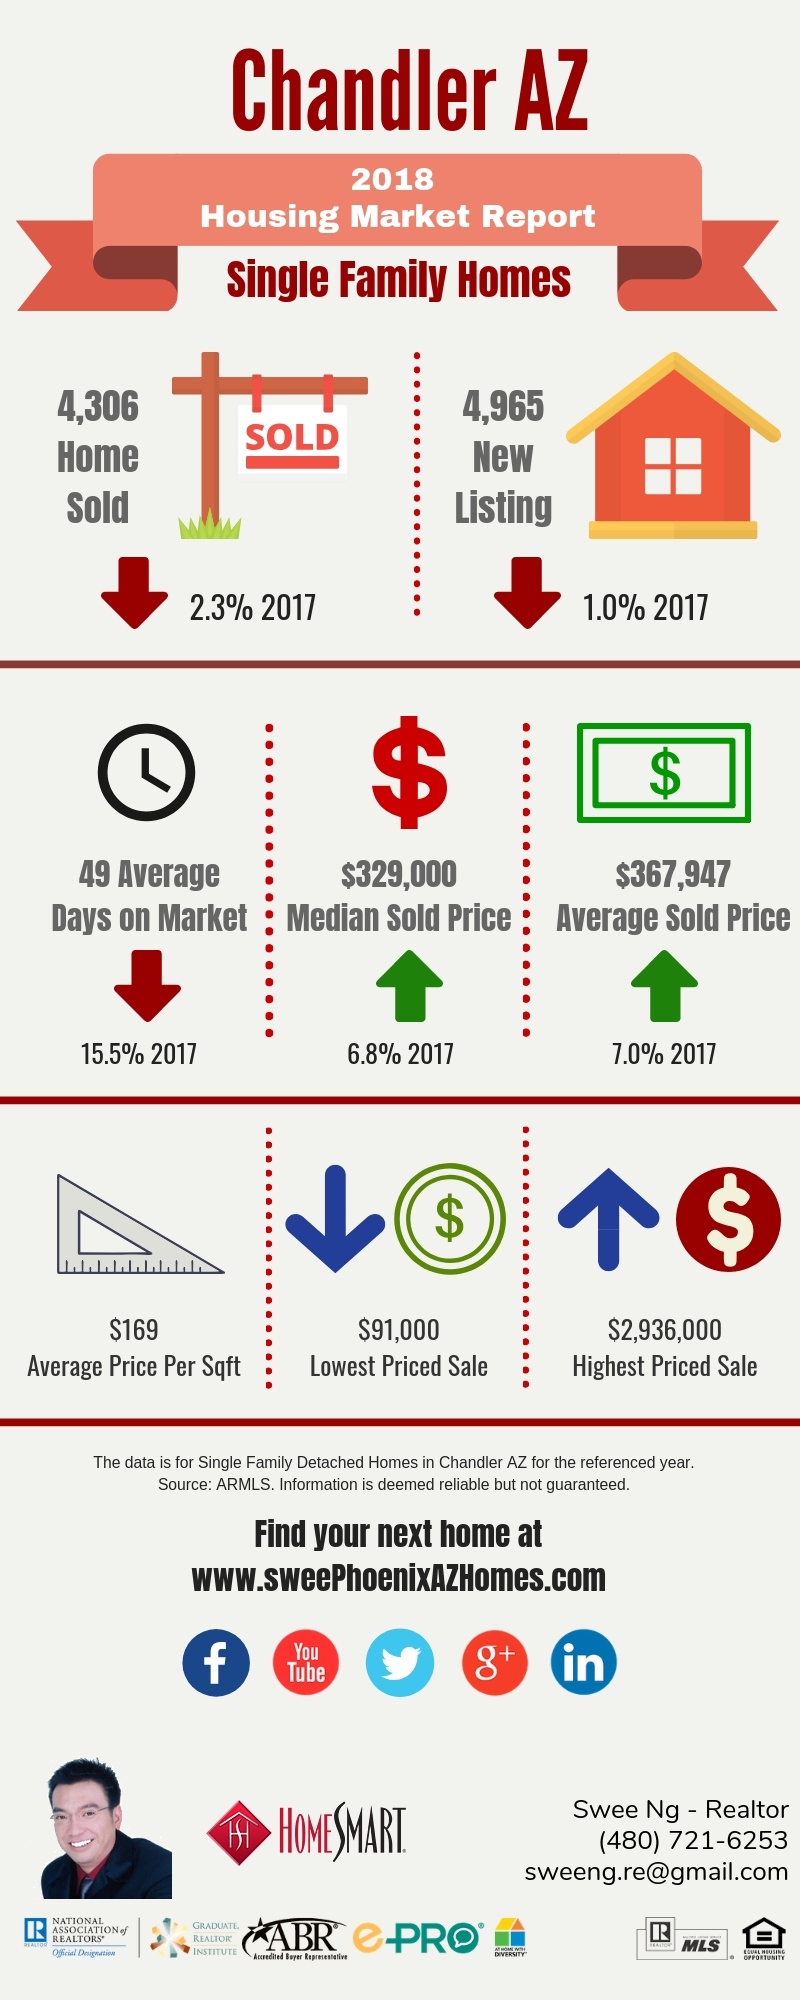 Chandler AZ Housing Market Update 2018 by Swee Ng, House Value and Real Estate Listings